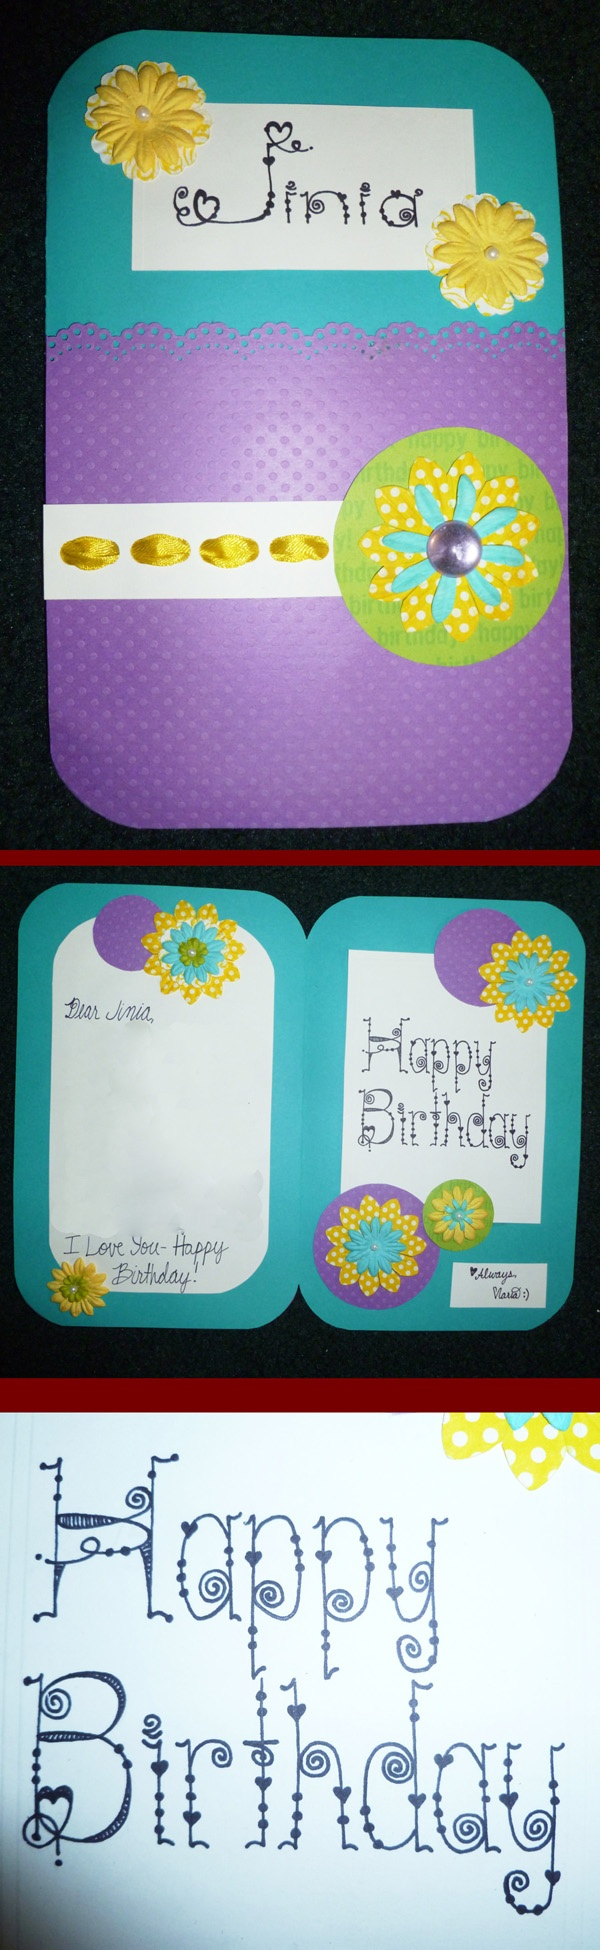 This is one of the simplest cards I've made but I like how bright and fun it is. handmade ribbon flower Birthday card ideas